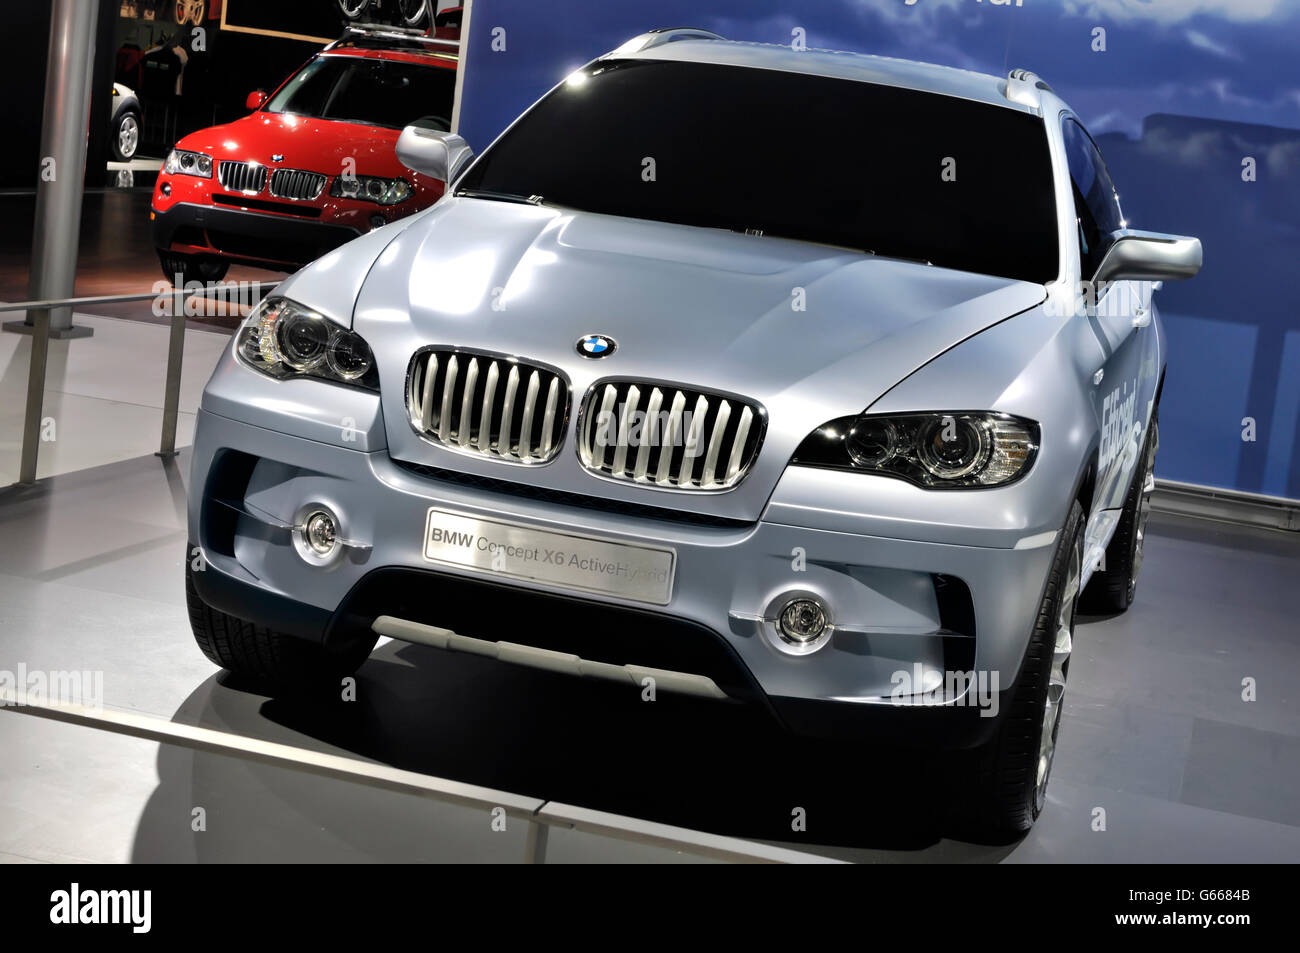 bmw x6 concept suv active hybrid at toronto auto show canadian stock photo royalty free image. Black Bedroom Furniture Sets. Home Design Ideas